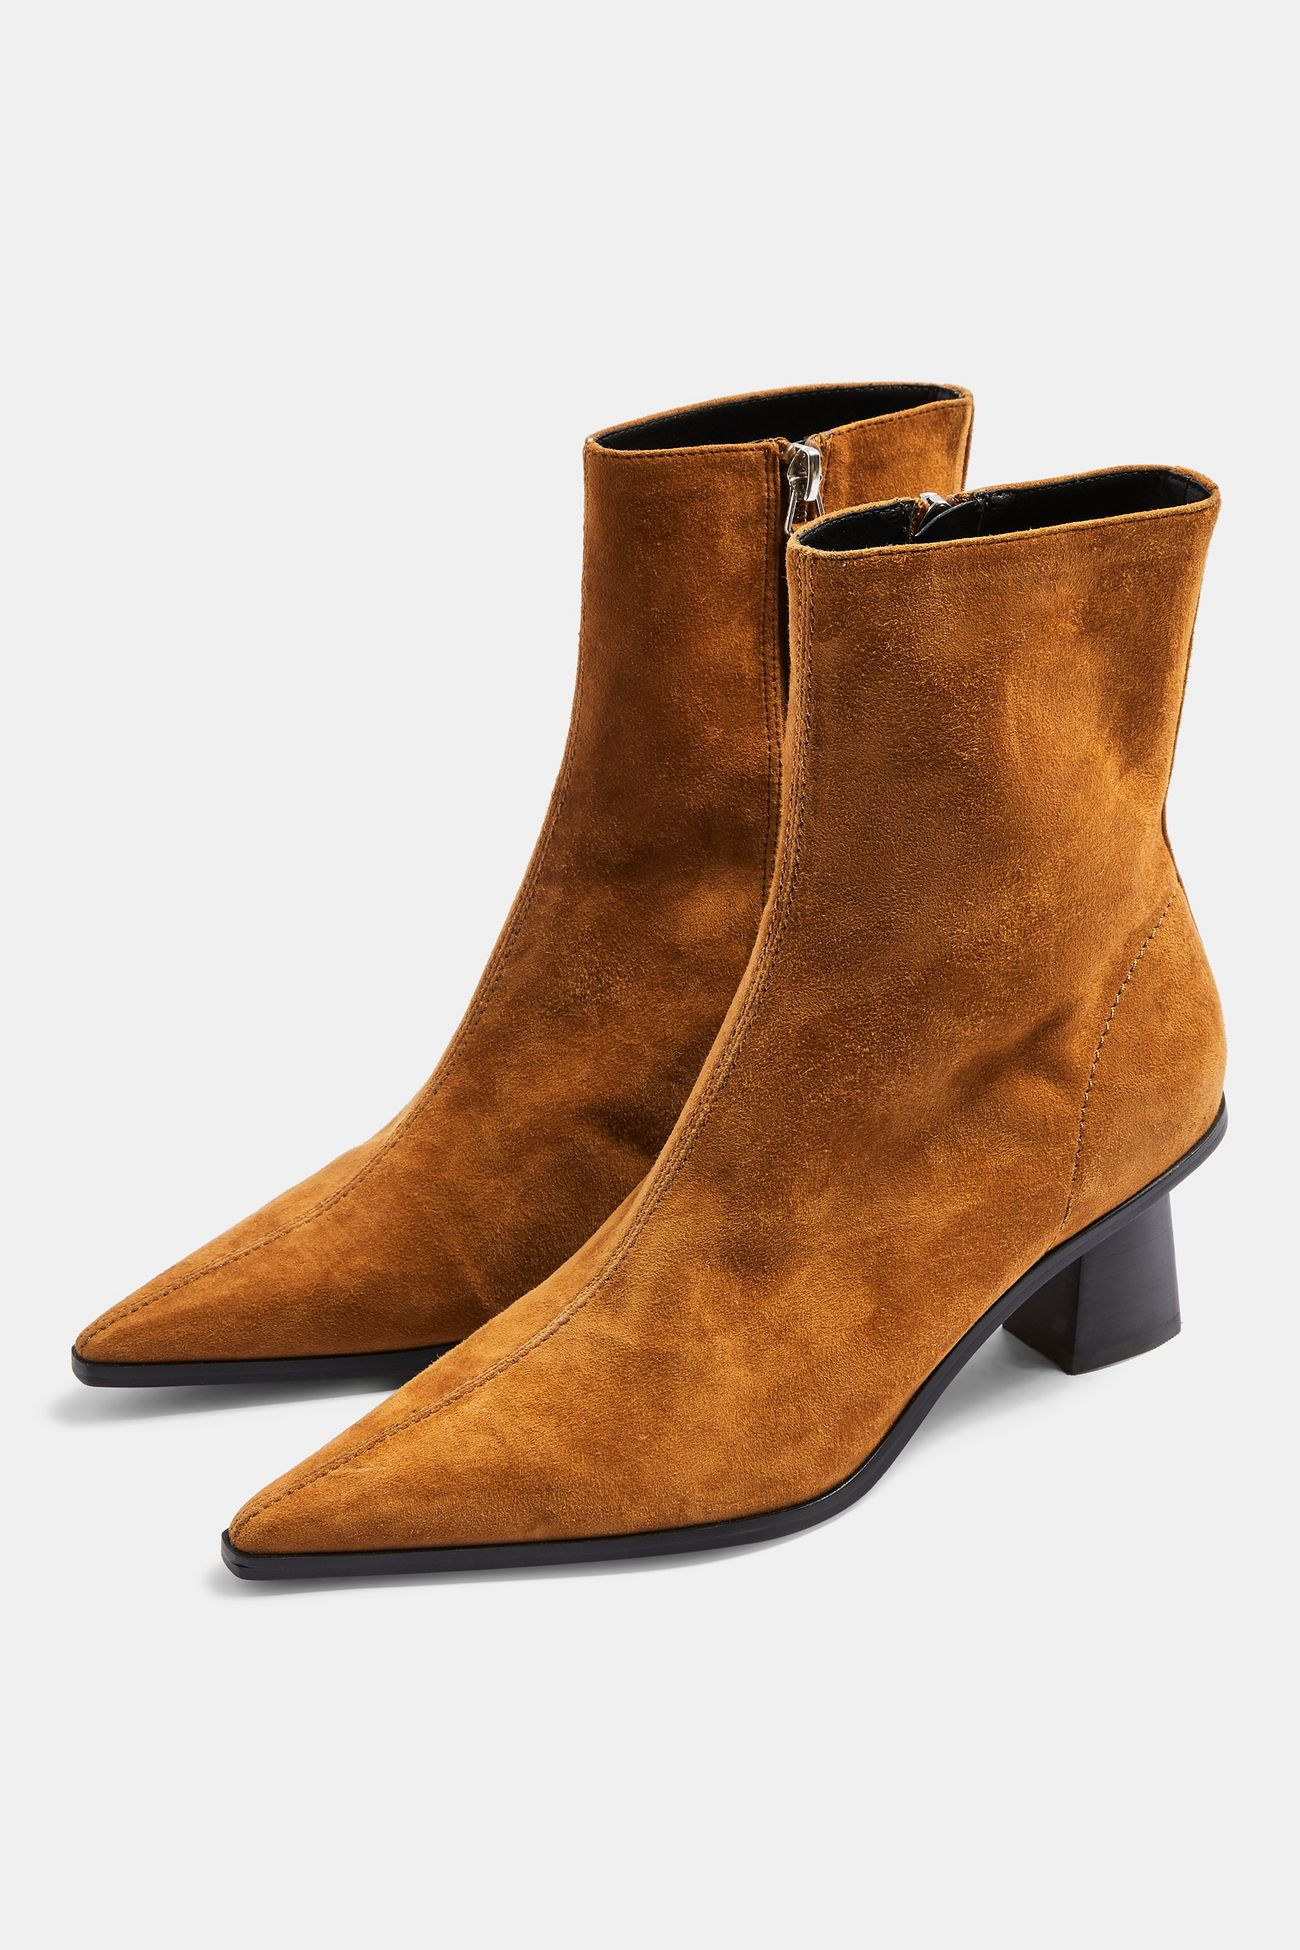 Topshop Tan Leather Boots £59